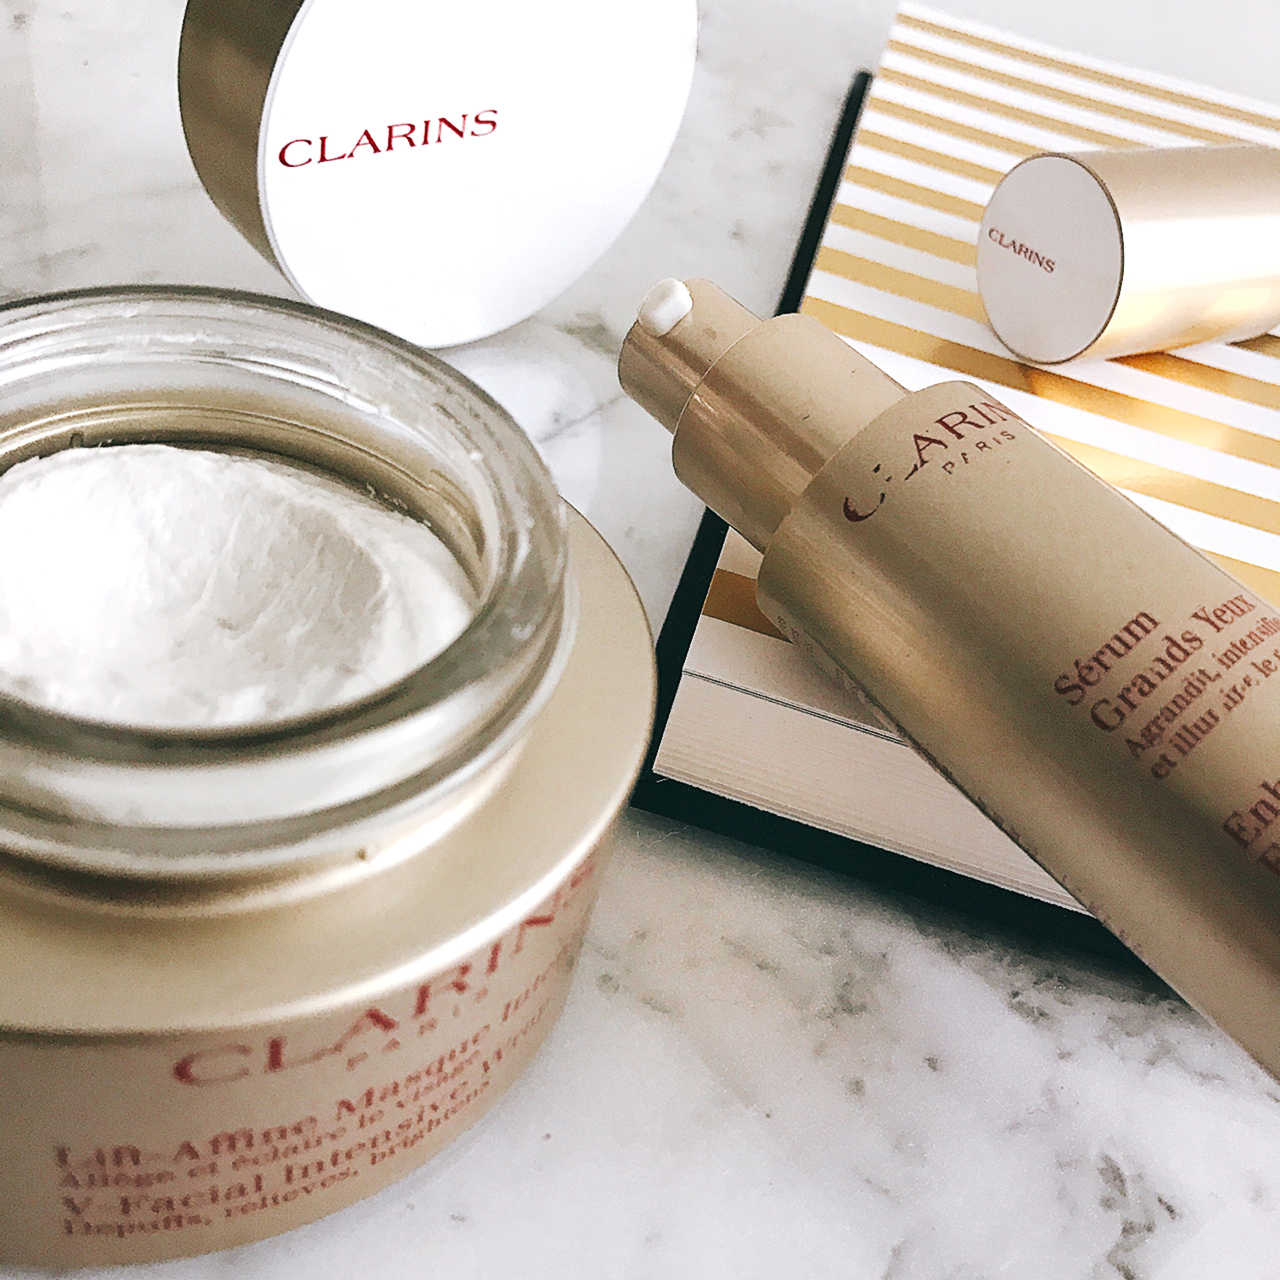 clarins facial shaping lift mask & enhancing eye lift serum